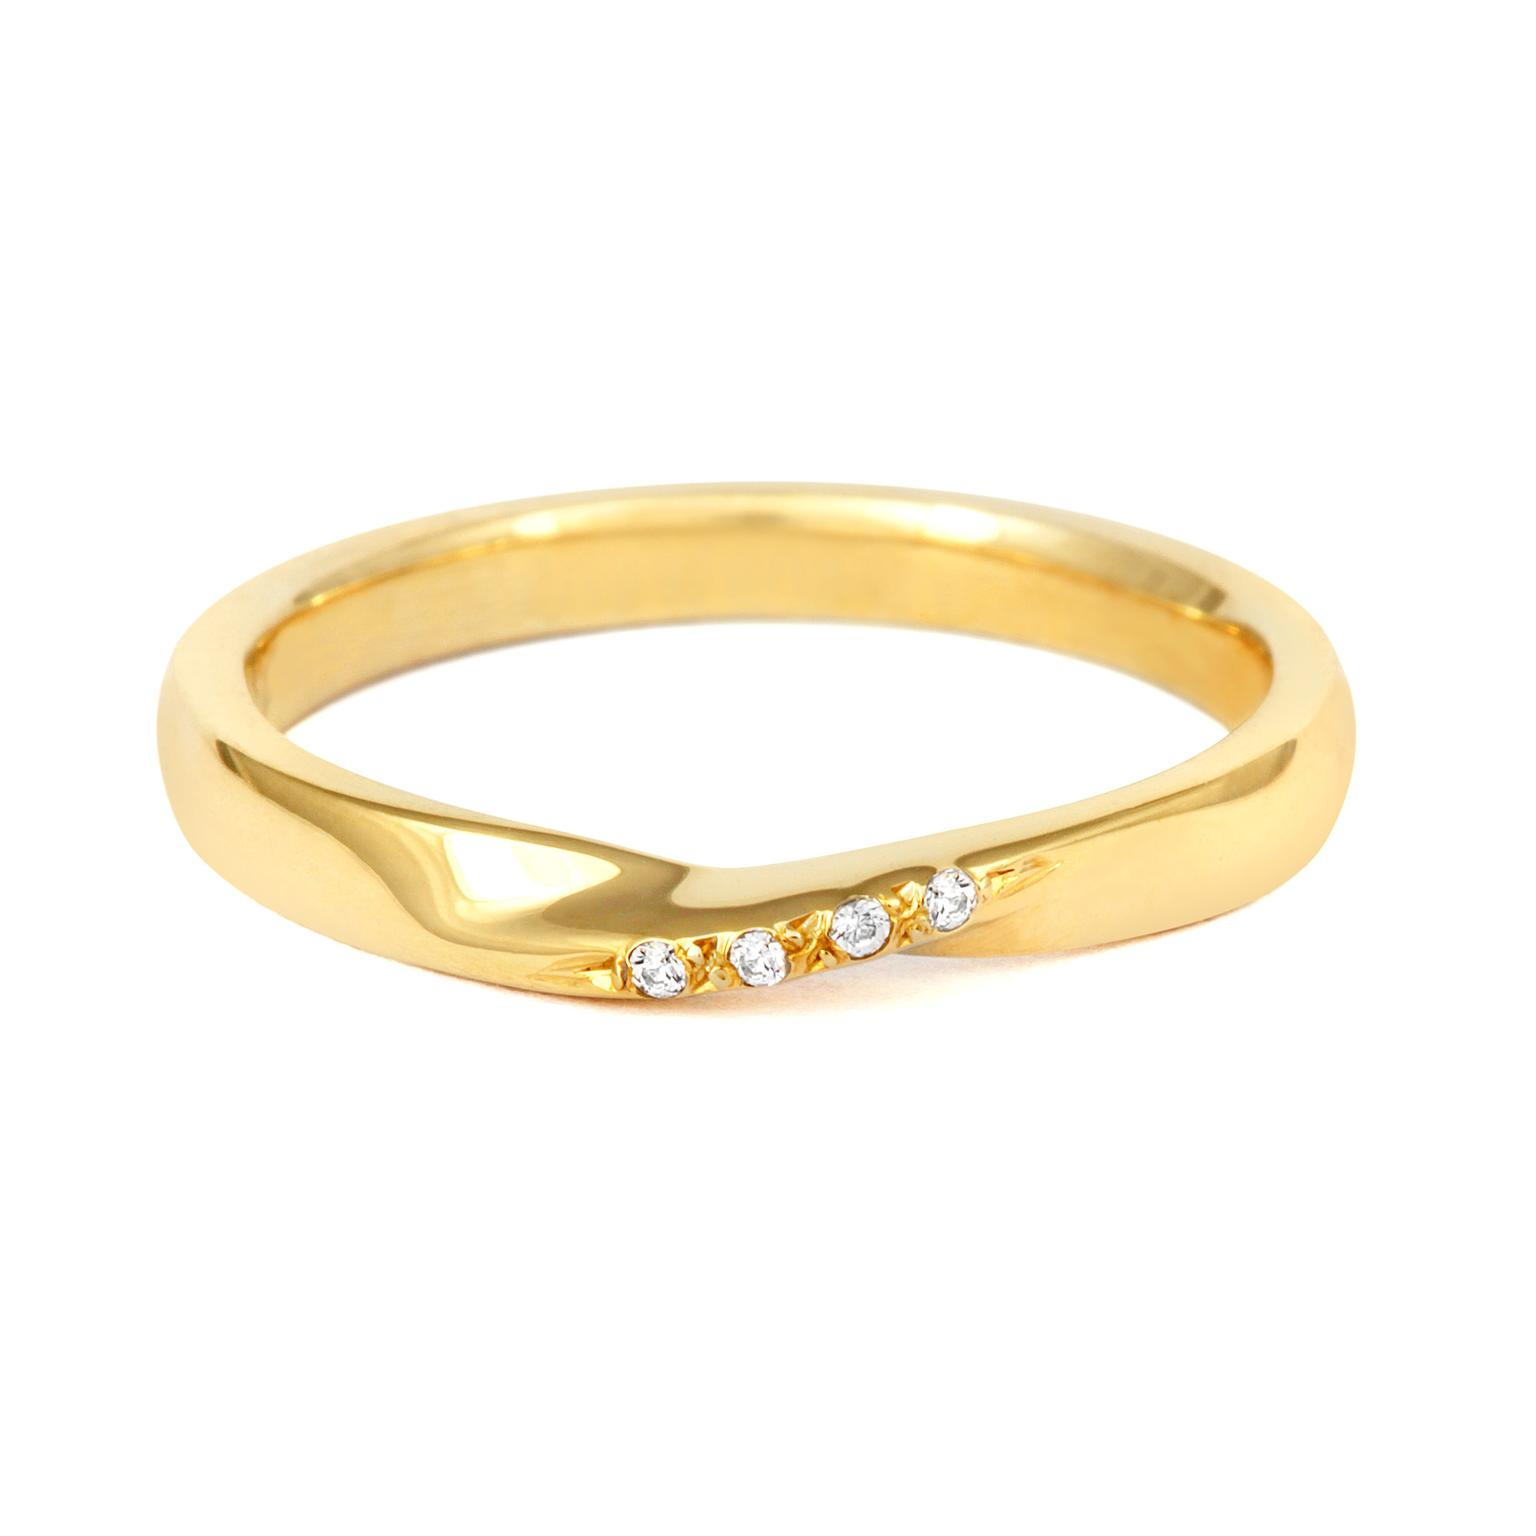 CRED Fairtrade gold and diamond-set wedding band